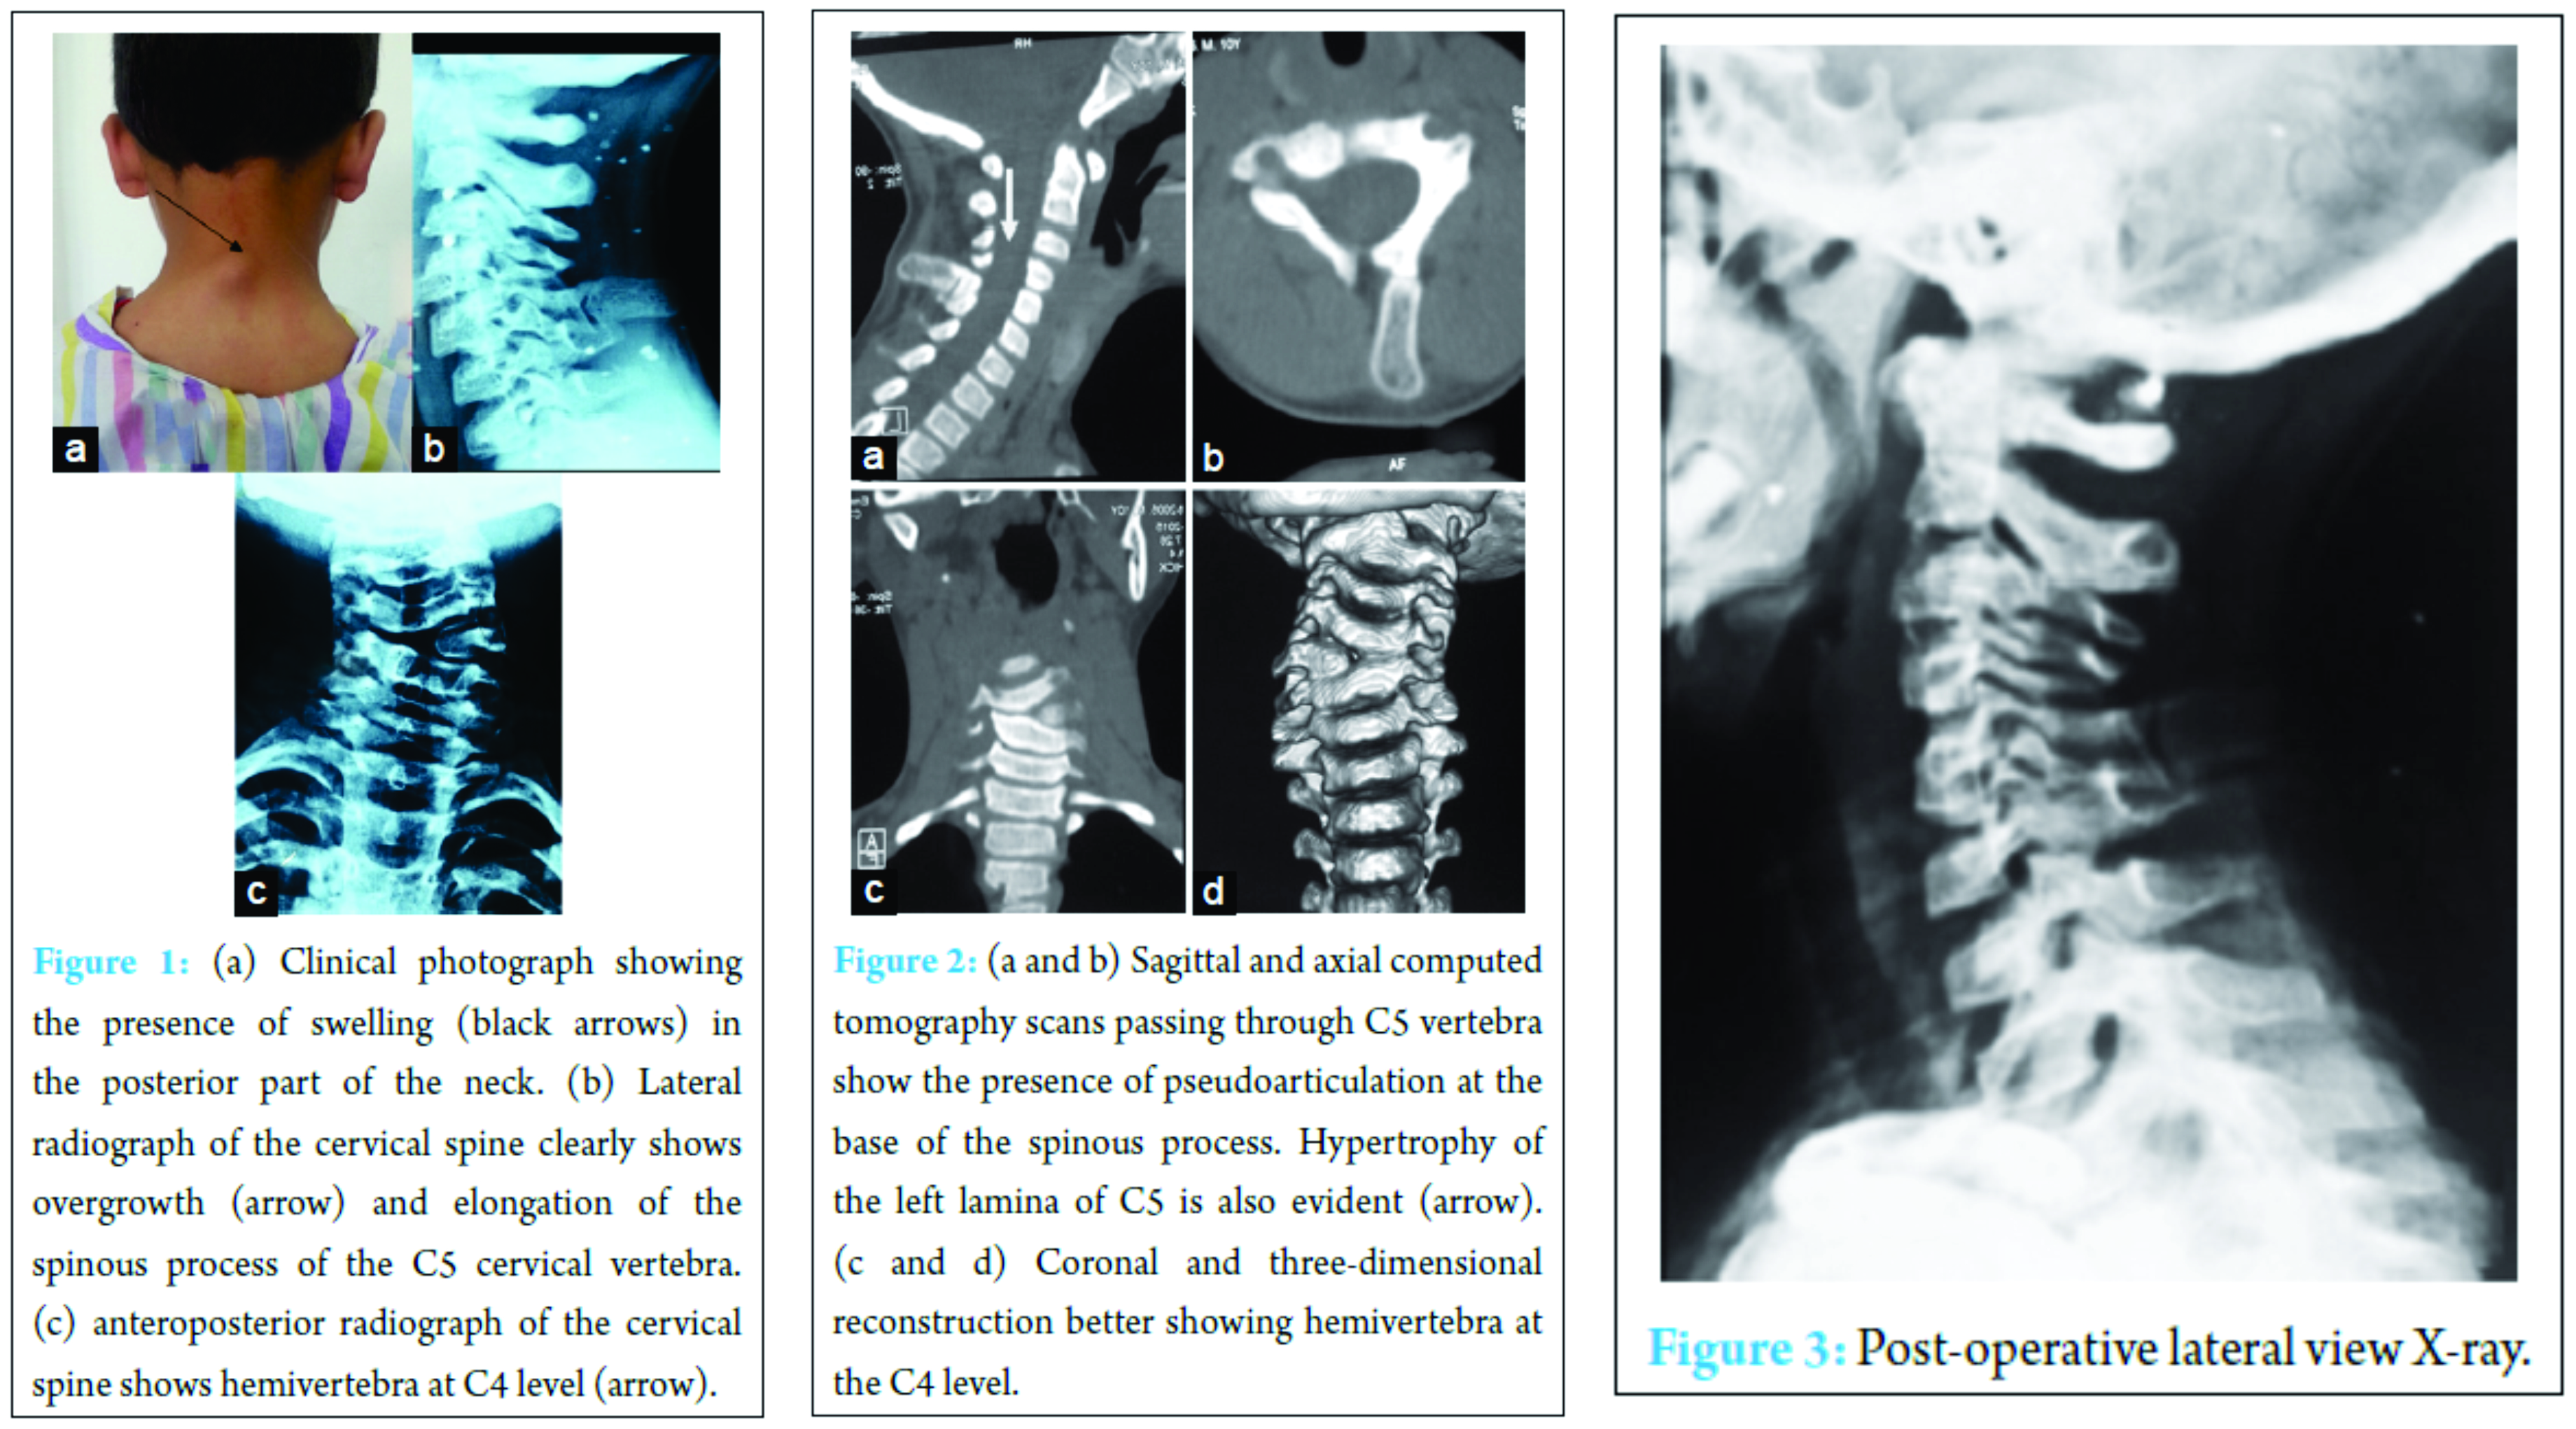 Hyperplasia Of Lamina And Spinous Process Of C5 Vertebrae And